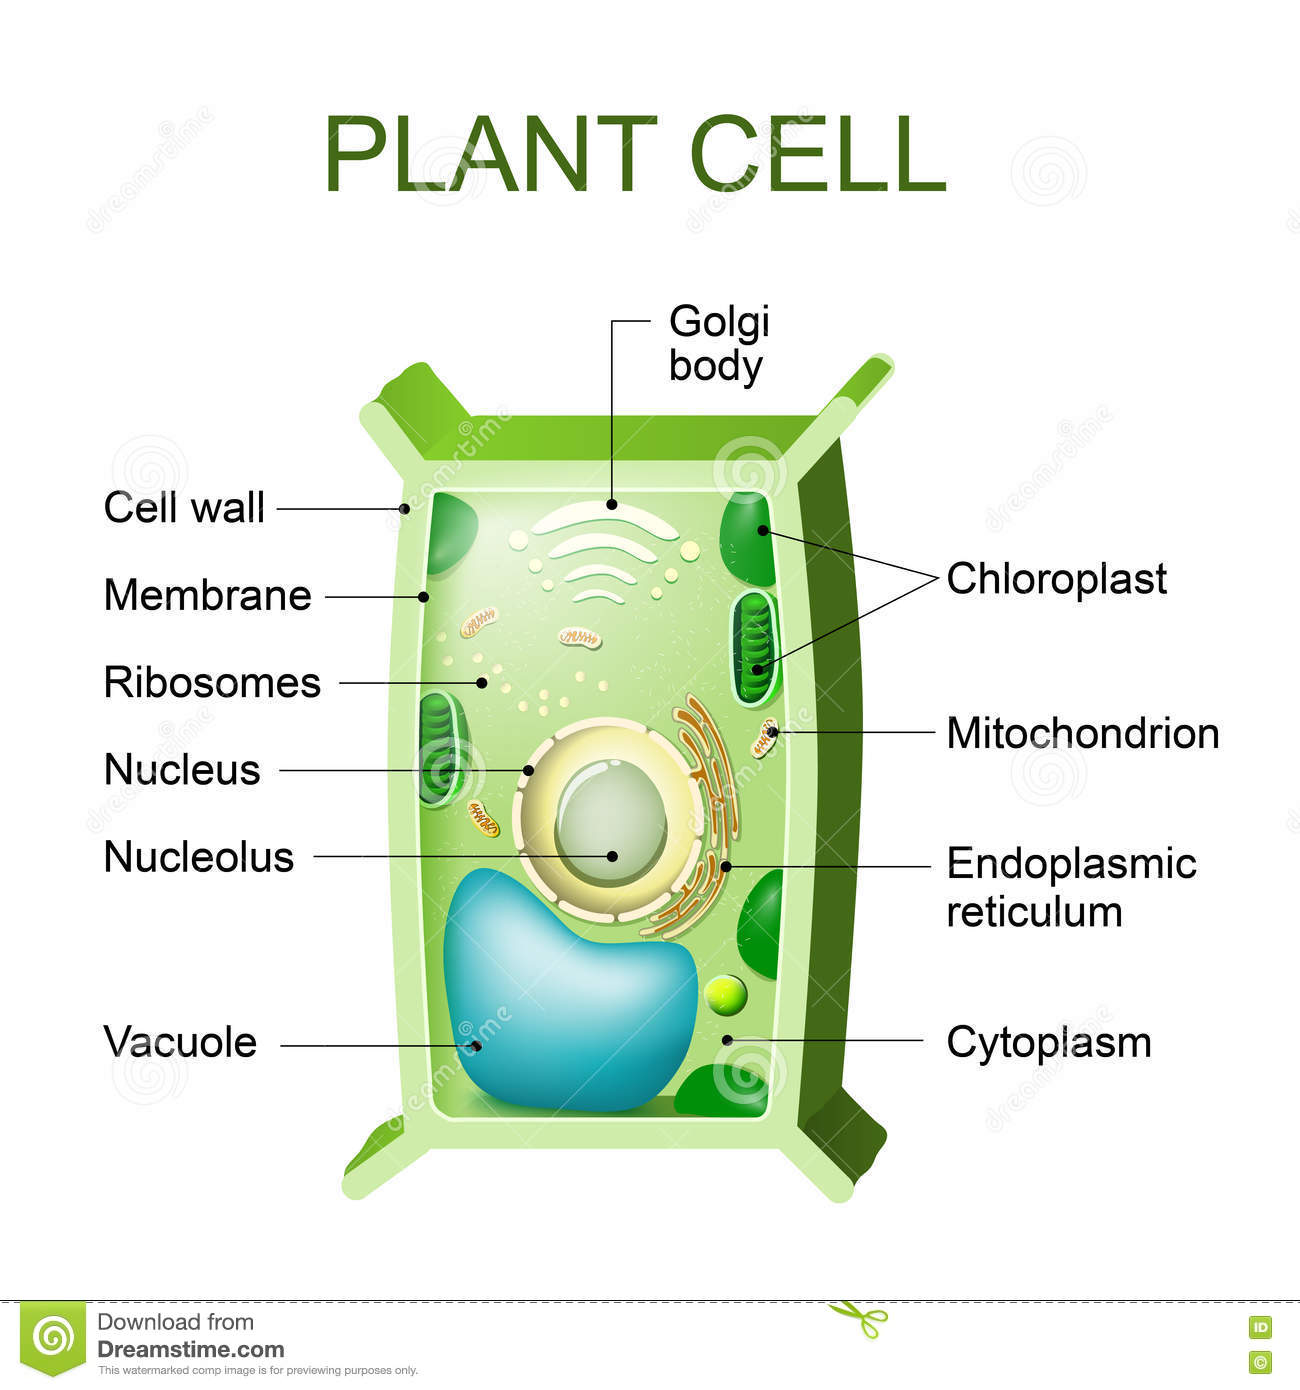 Plant cell anatomy stock vector. Illustration of engineering - 76671566